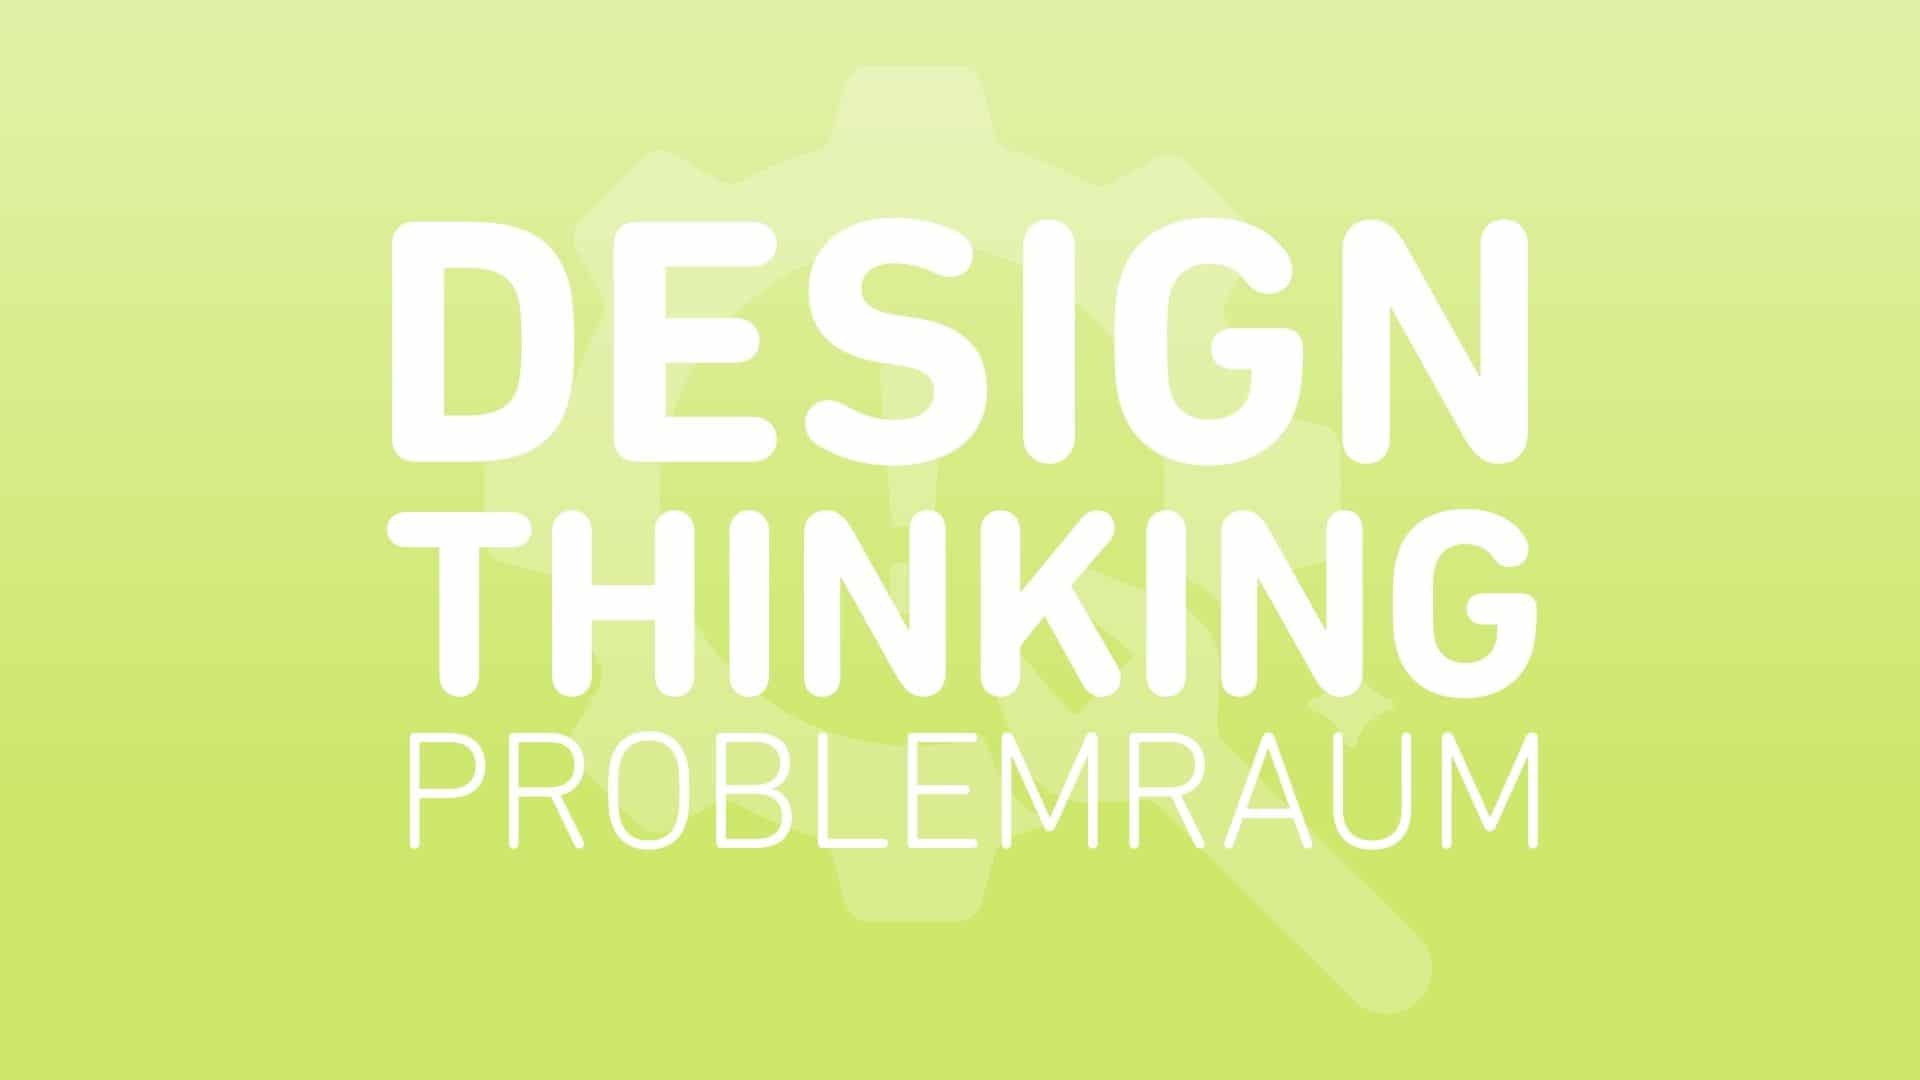 design-thinking-problemraum